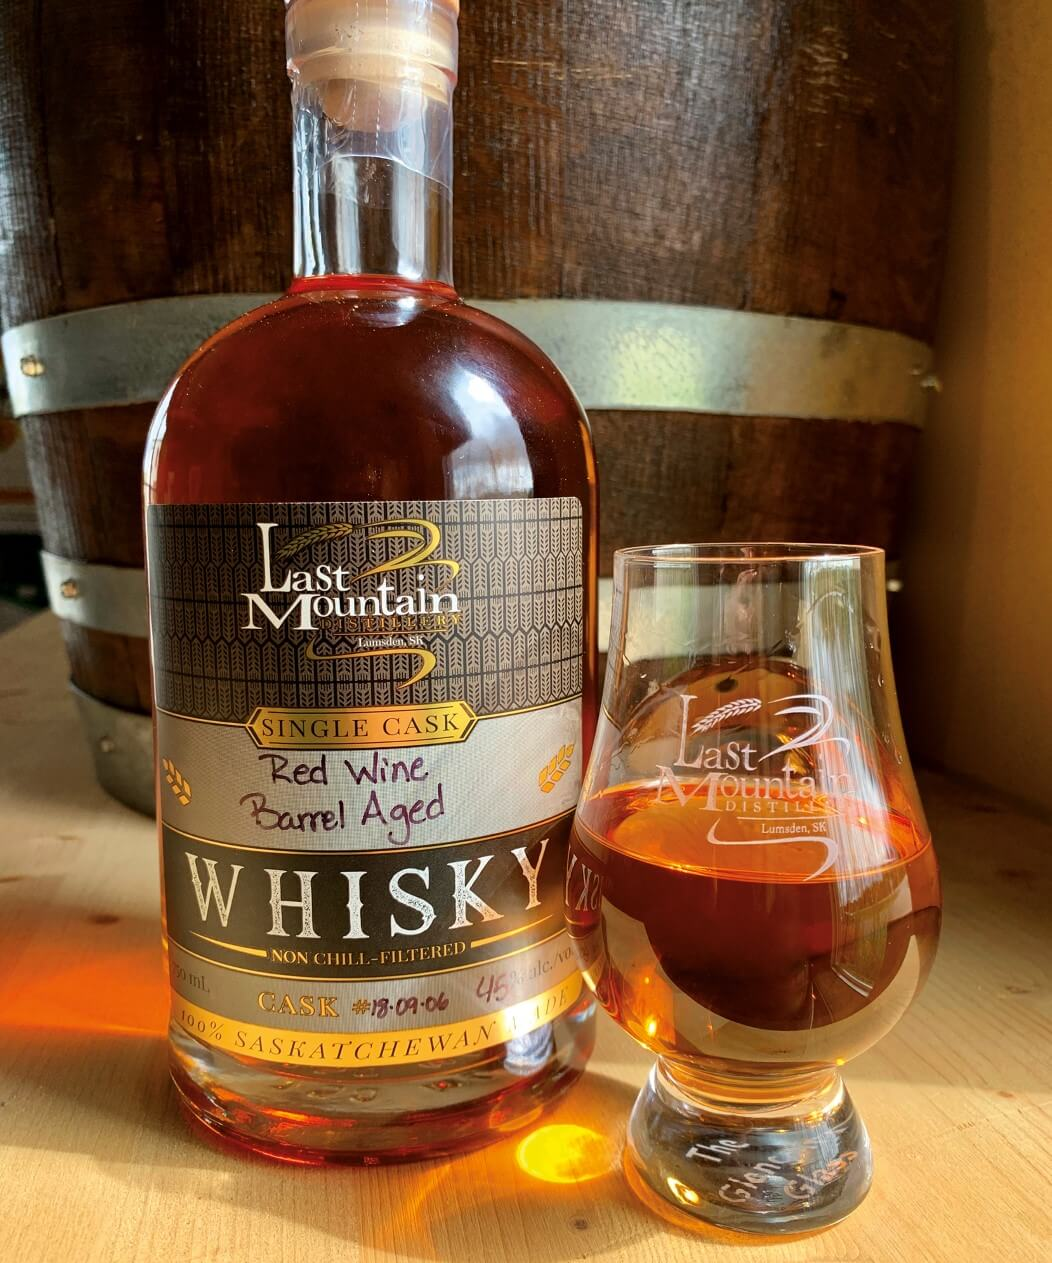 Last Mountain red wine aged whisky